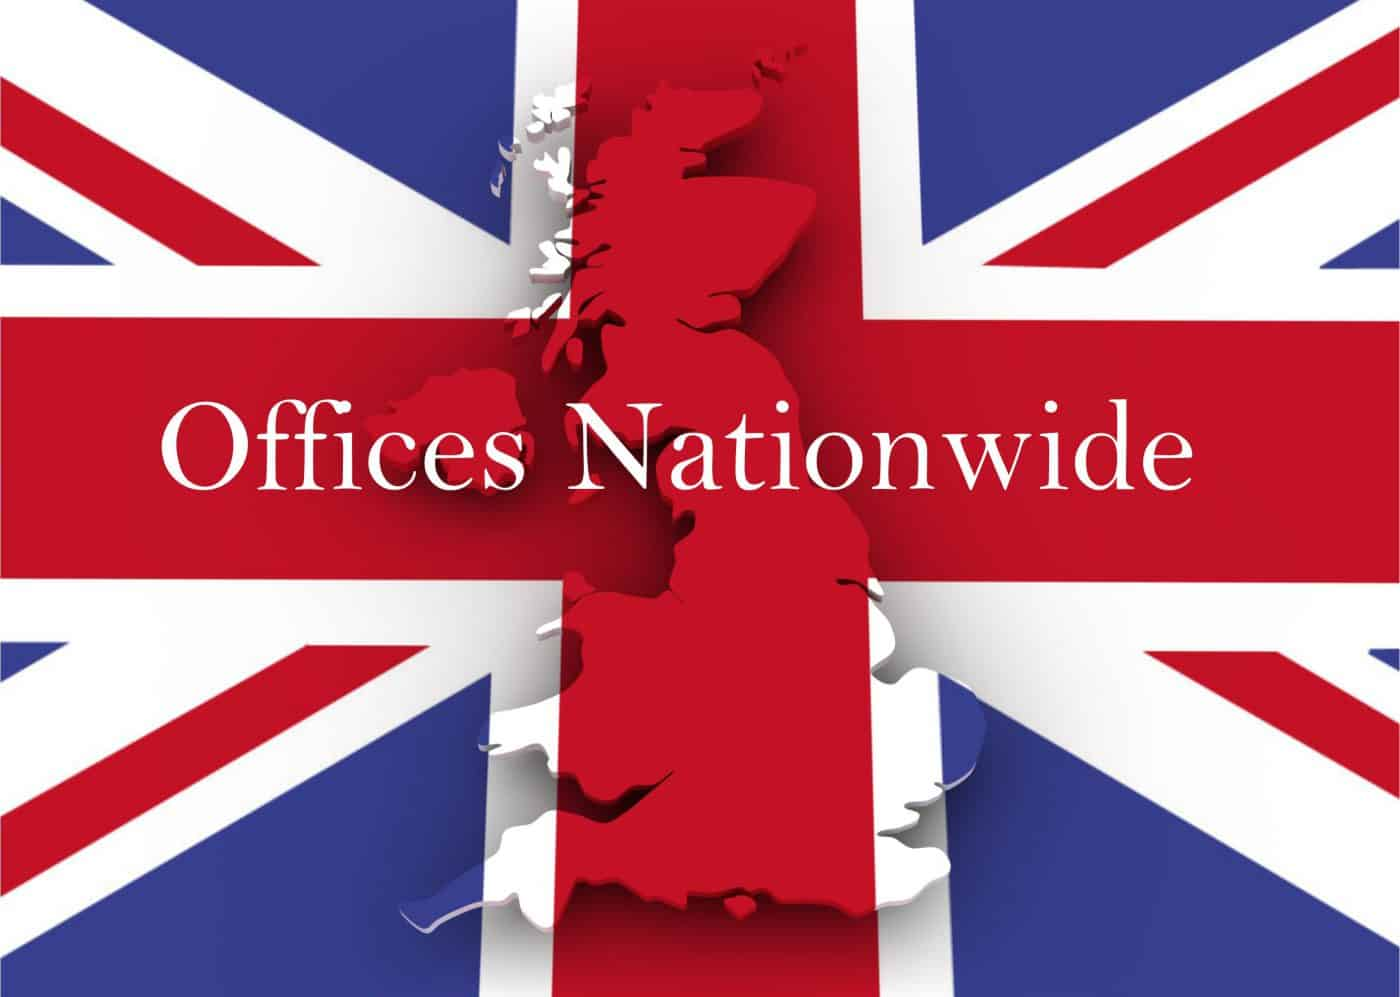 Offices Nationwide Image